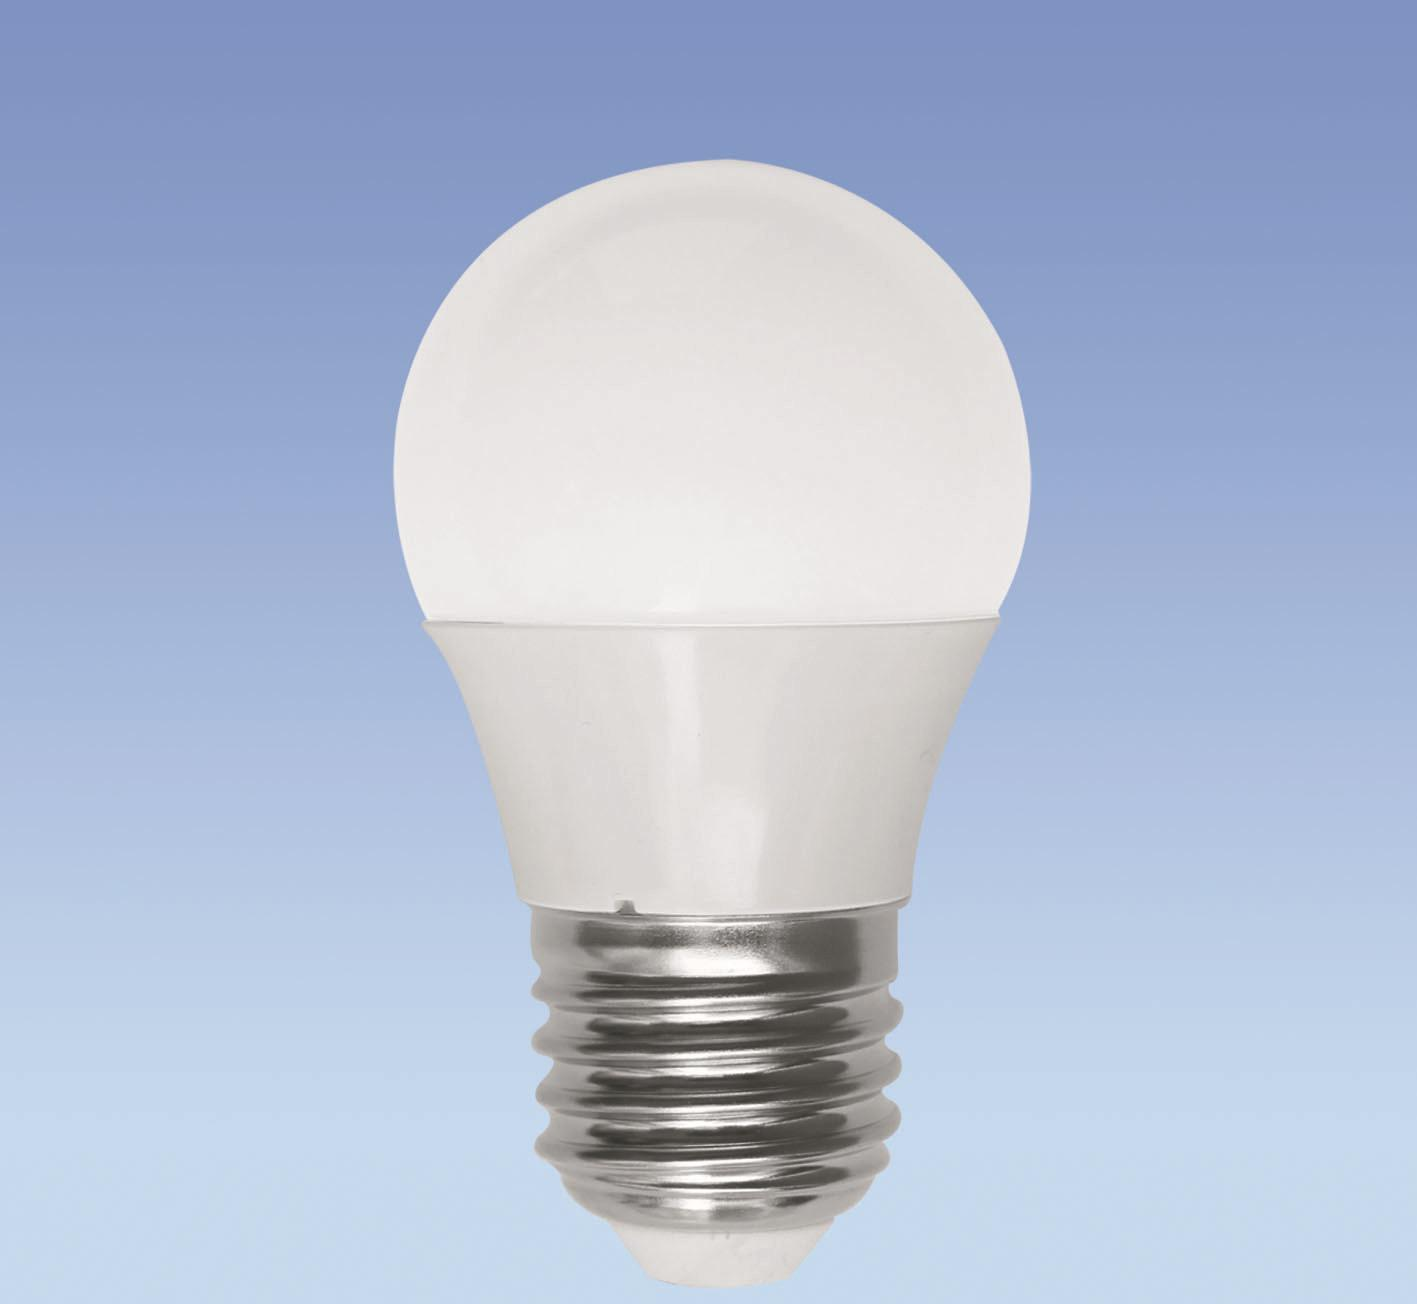 Good business in NEW LED Bulbs